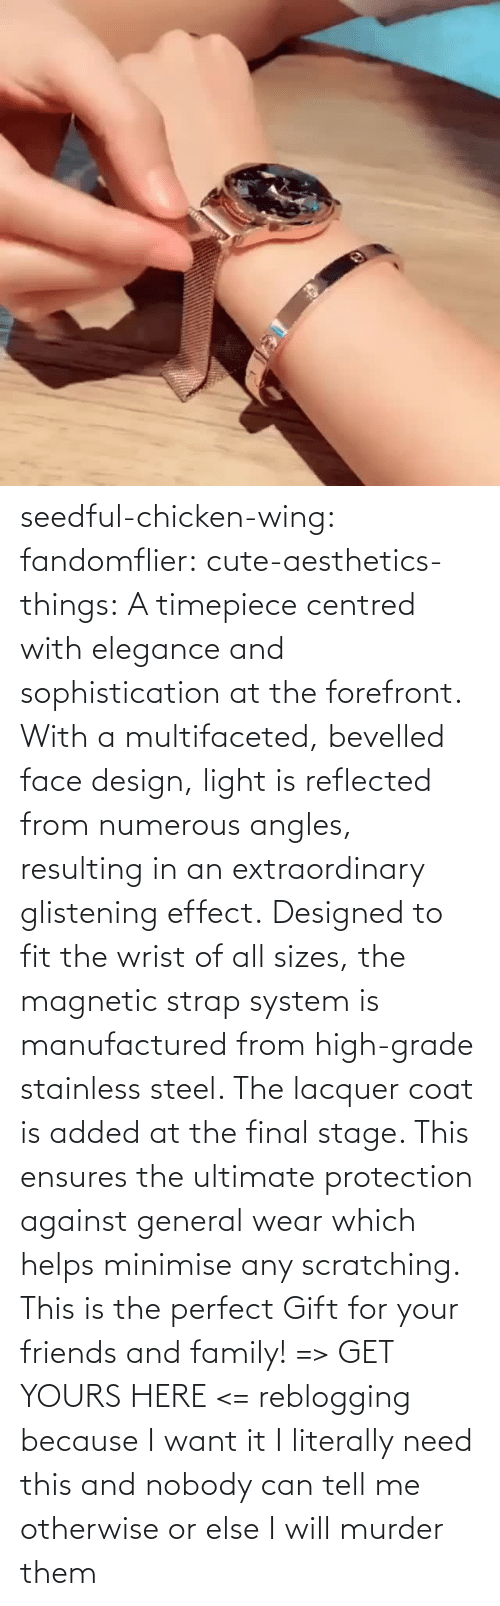 Width: seedful-chicken-wing: fandomflier:  cute-aesthetics-things:   A timepiece centred with elegance and sophistication at the forefront. With a multifaceted, bevelled face design, light is reflected from numerous angles, resulting in an extraordinary glistening effect. Designed to fit the wrist of all sizes, the magnetic strap system is manufactured from high-grade stainless steel. The lacquer coat is added at the final stage. This ensures the ultimate protection against general wear which helps minimise any scratching. This is the perfect Gift for your friends and family! => GET YOURS HERE <=   reblogging because I want it  I literally need this and nobody can tell me otherwise or else I will murder them